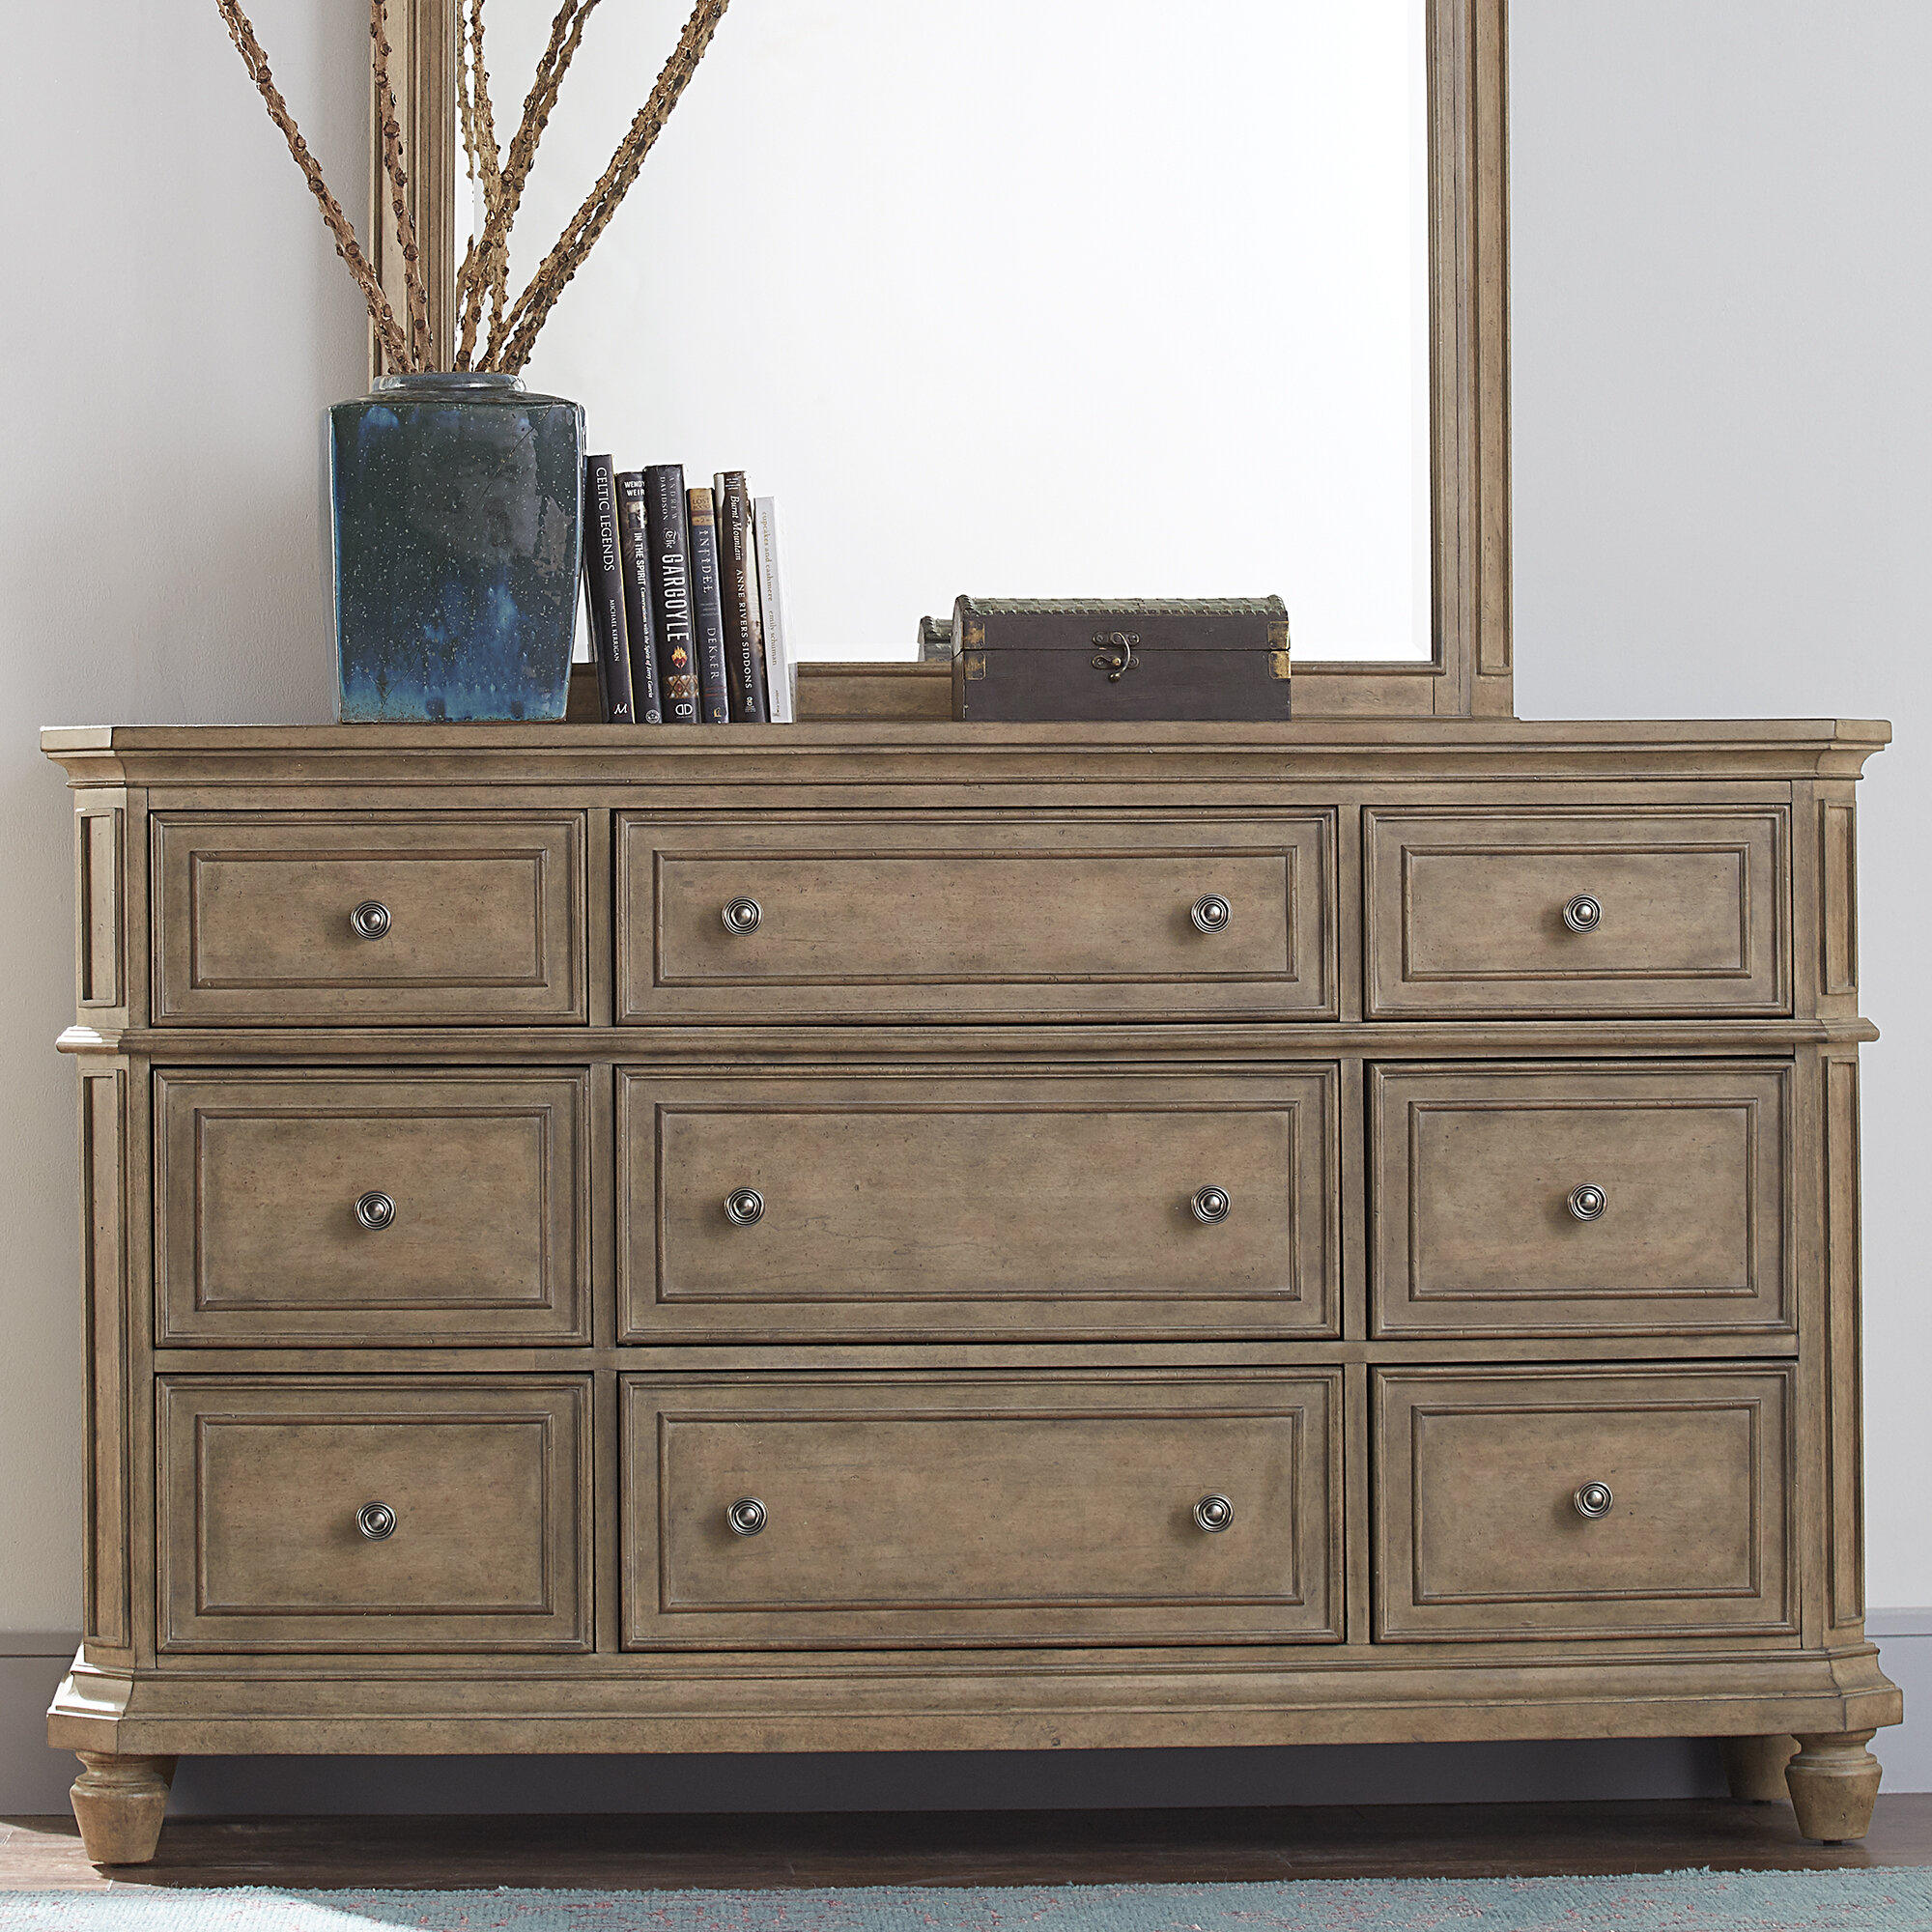 Darby Home Co Mckelvey 9 Drawer Double Dresser With Mirror Reviews Wayfair